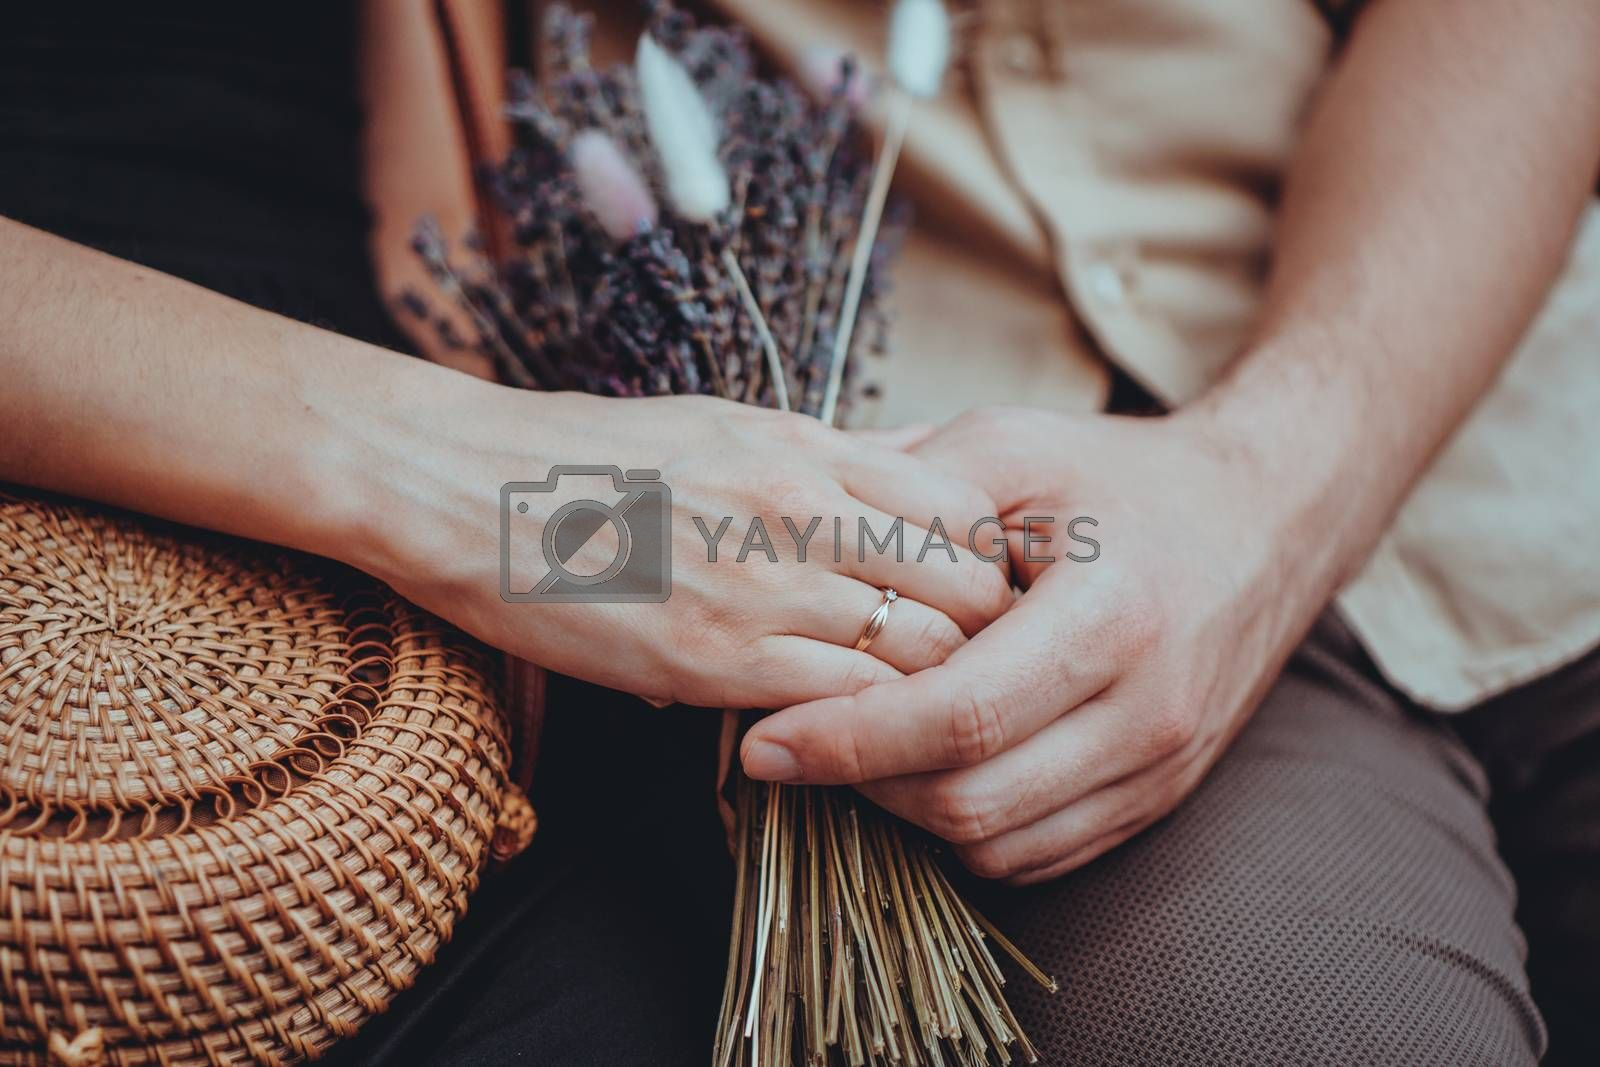 Bouquet of lavender flowers in girls hands. Engagement ring on hand. Love couple holding hands. Love, relationships, travel, romance concept.